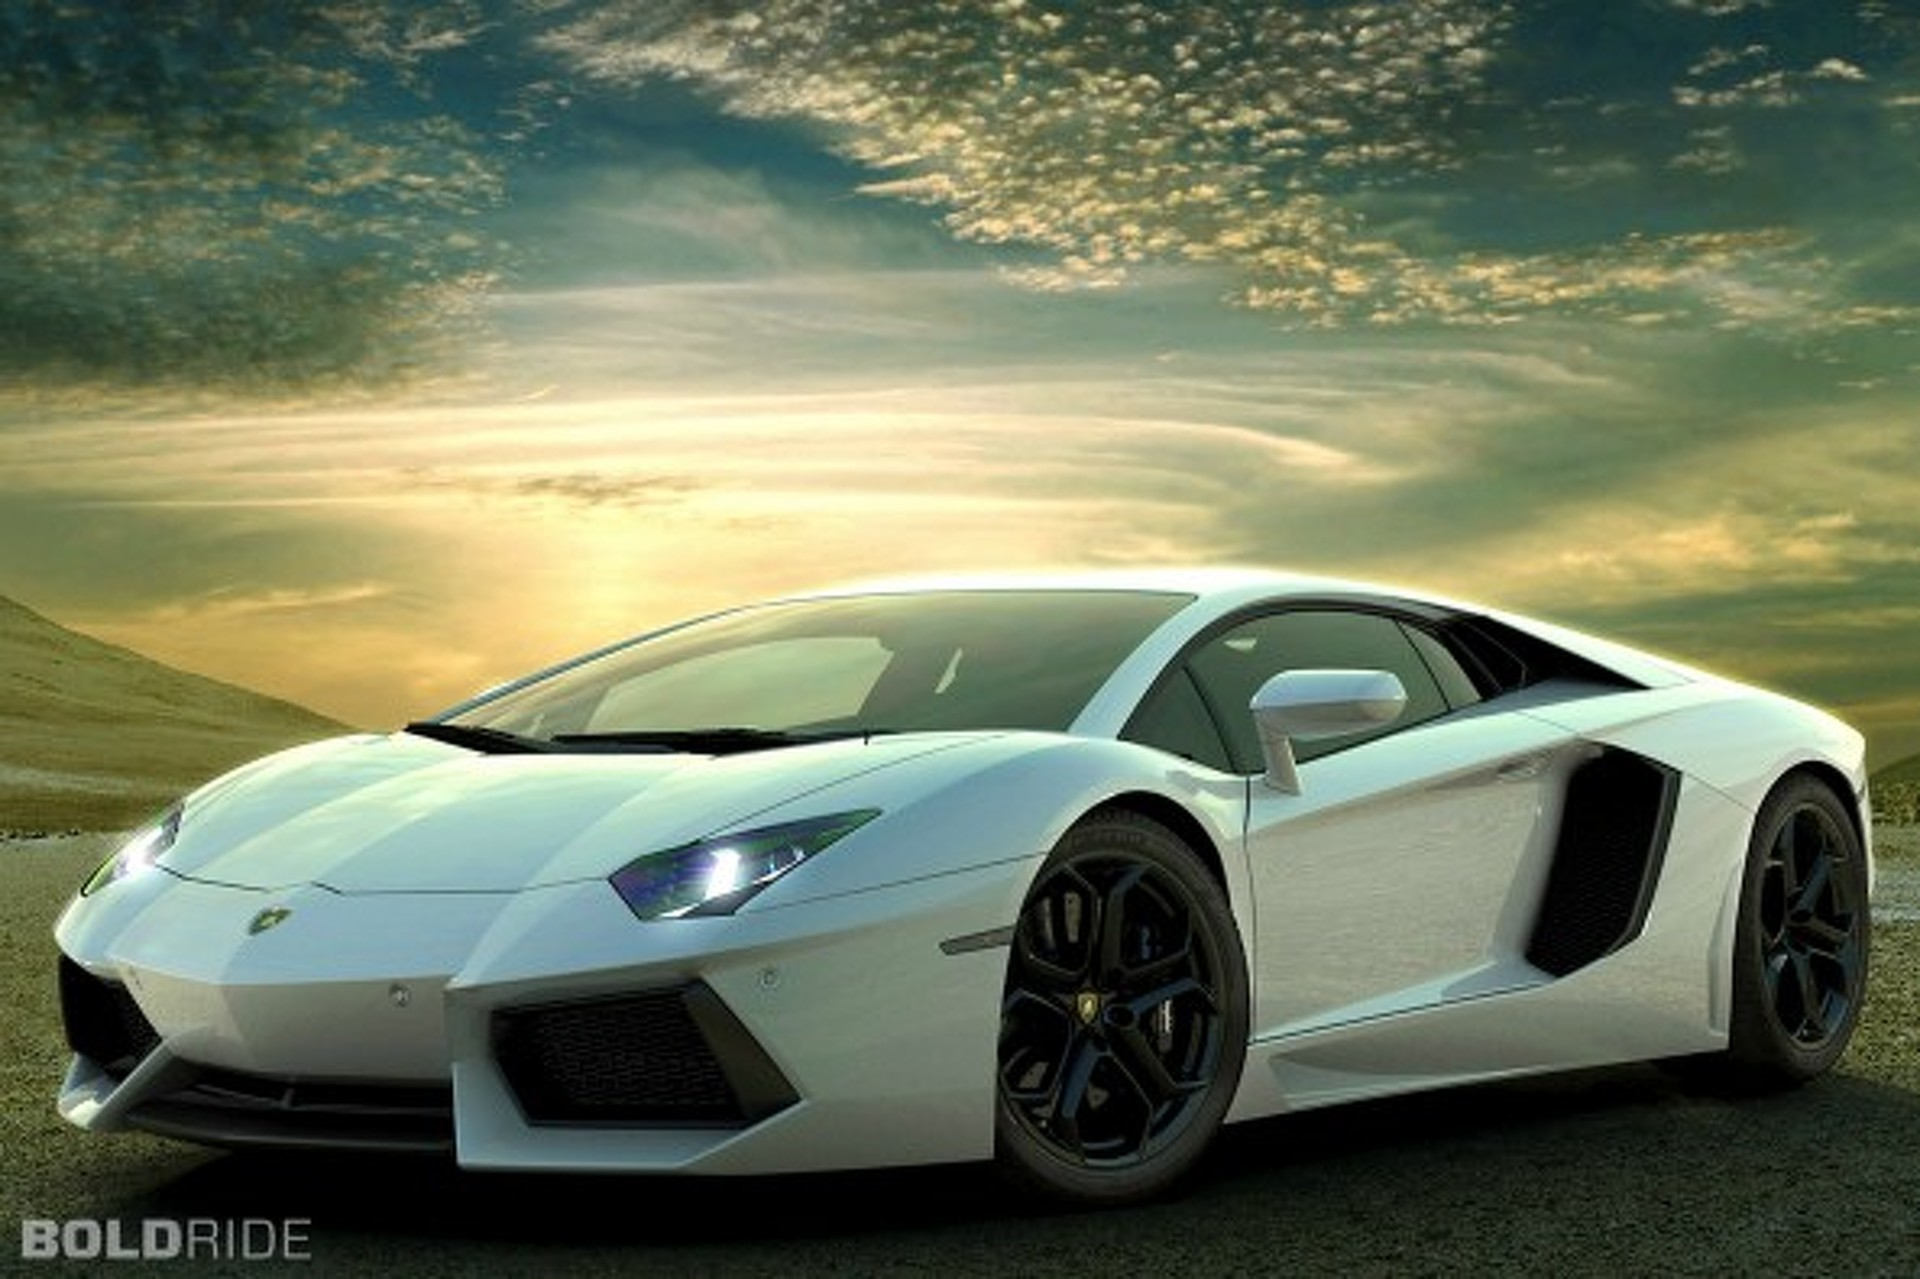 Cool Lamborghini Pictures 28161 1920x1080